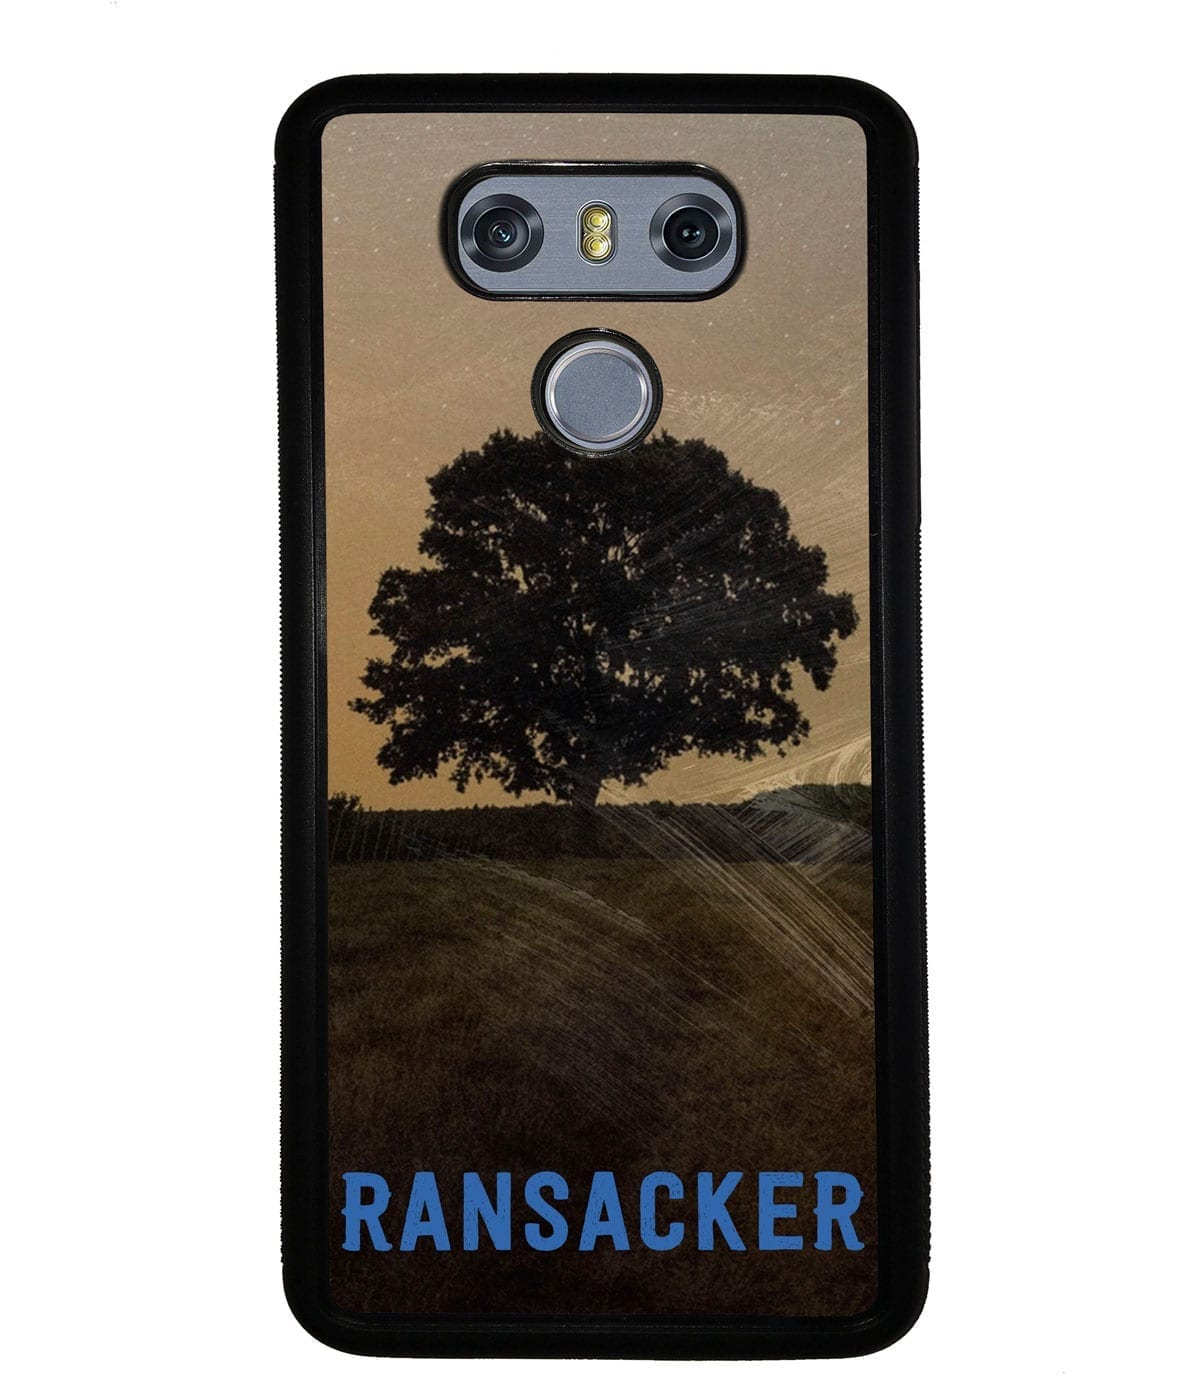 Ransacker Phone Case (LG)